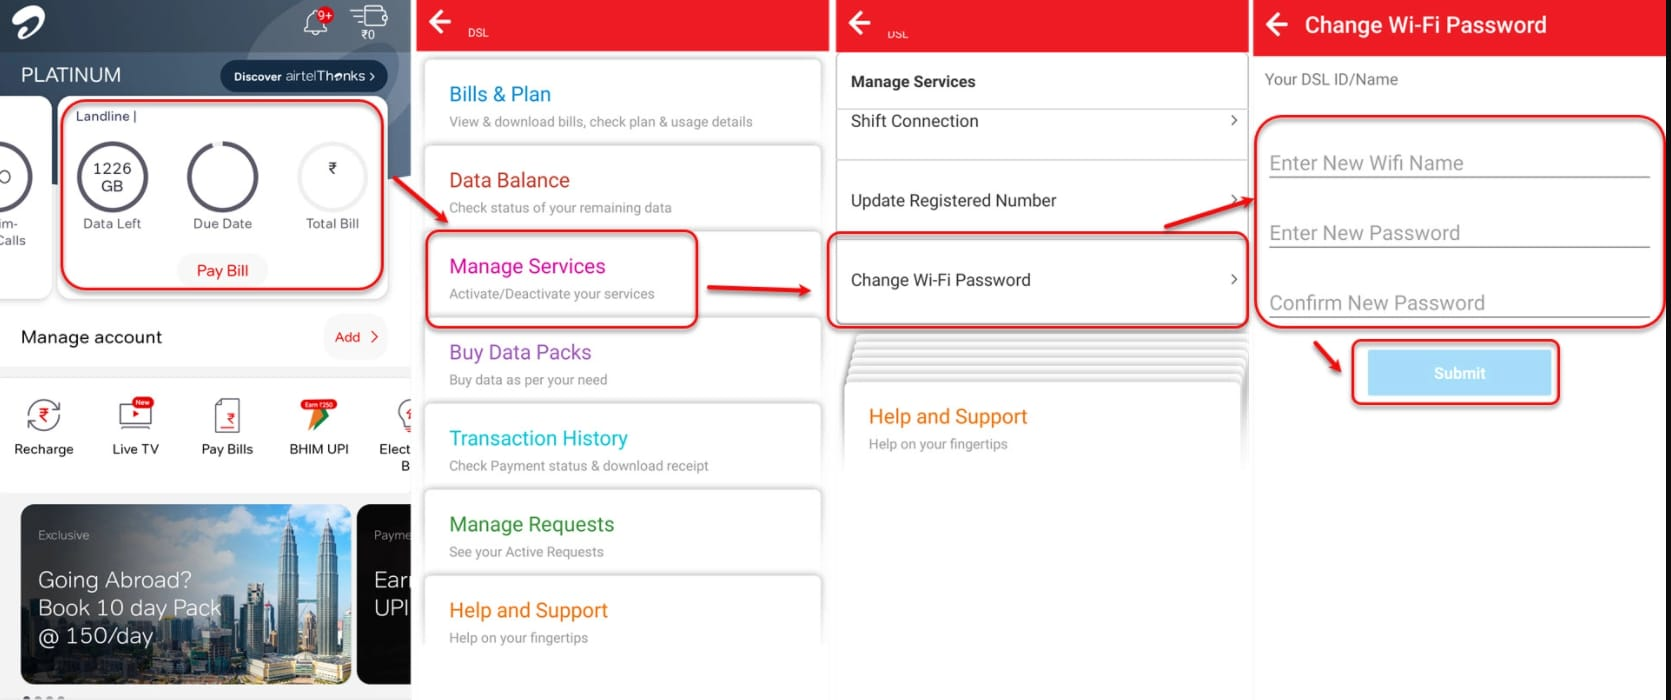 How to change Airtel WiFi password using the app?